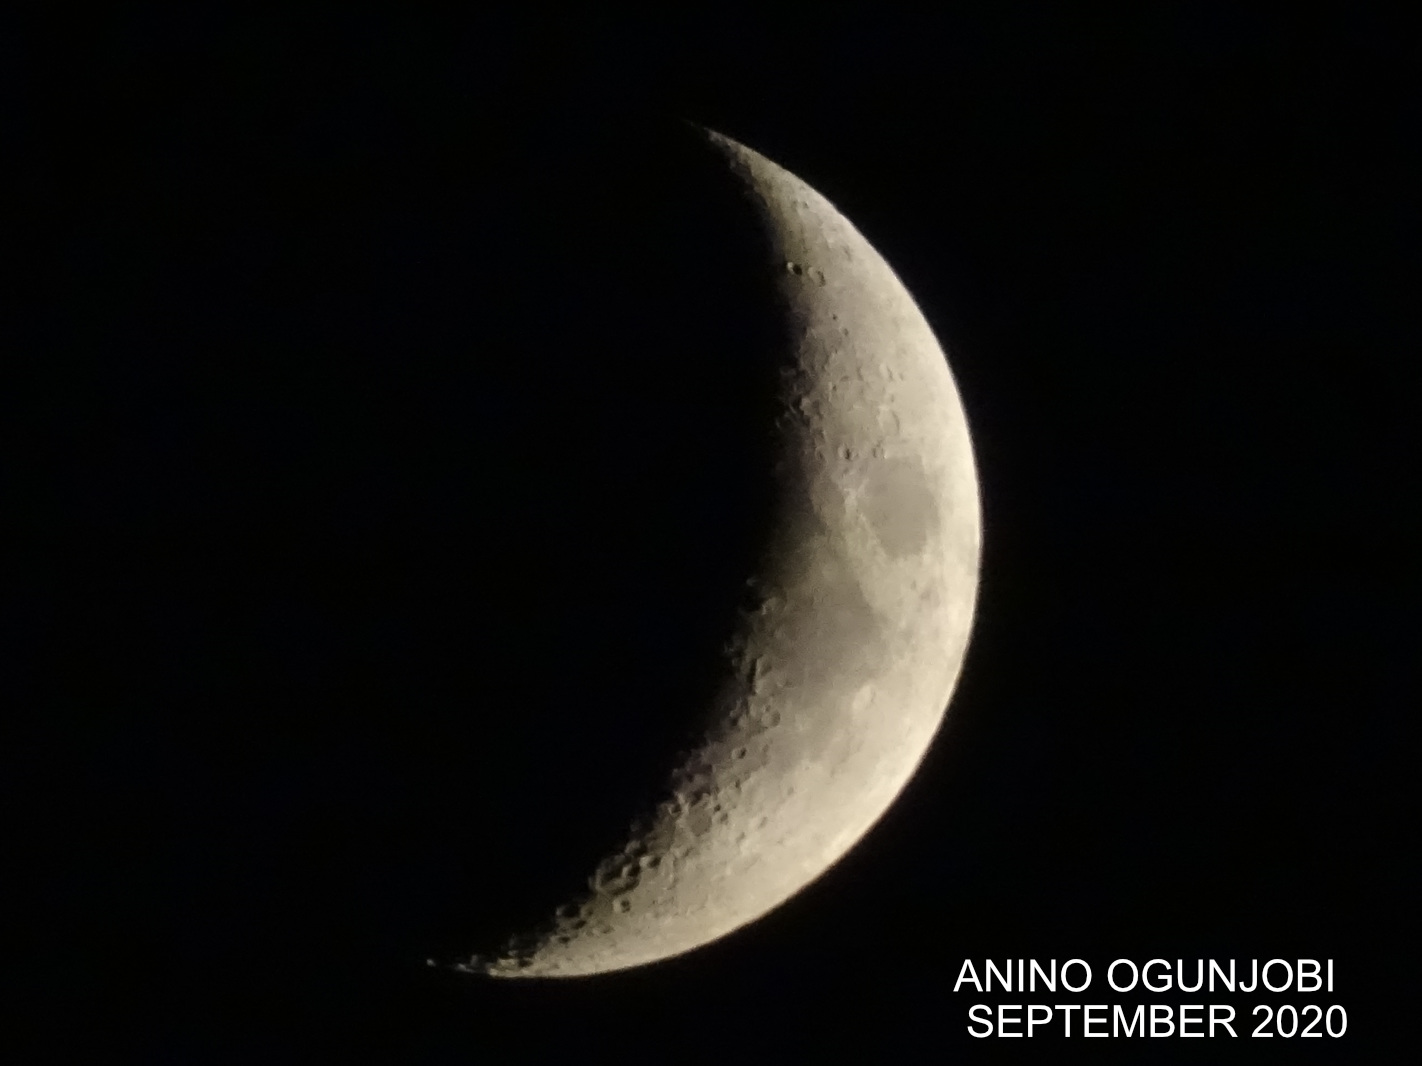 Waxing Crescent moon phase September 2020